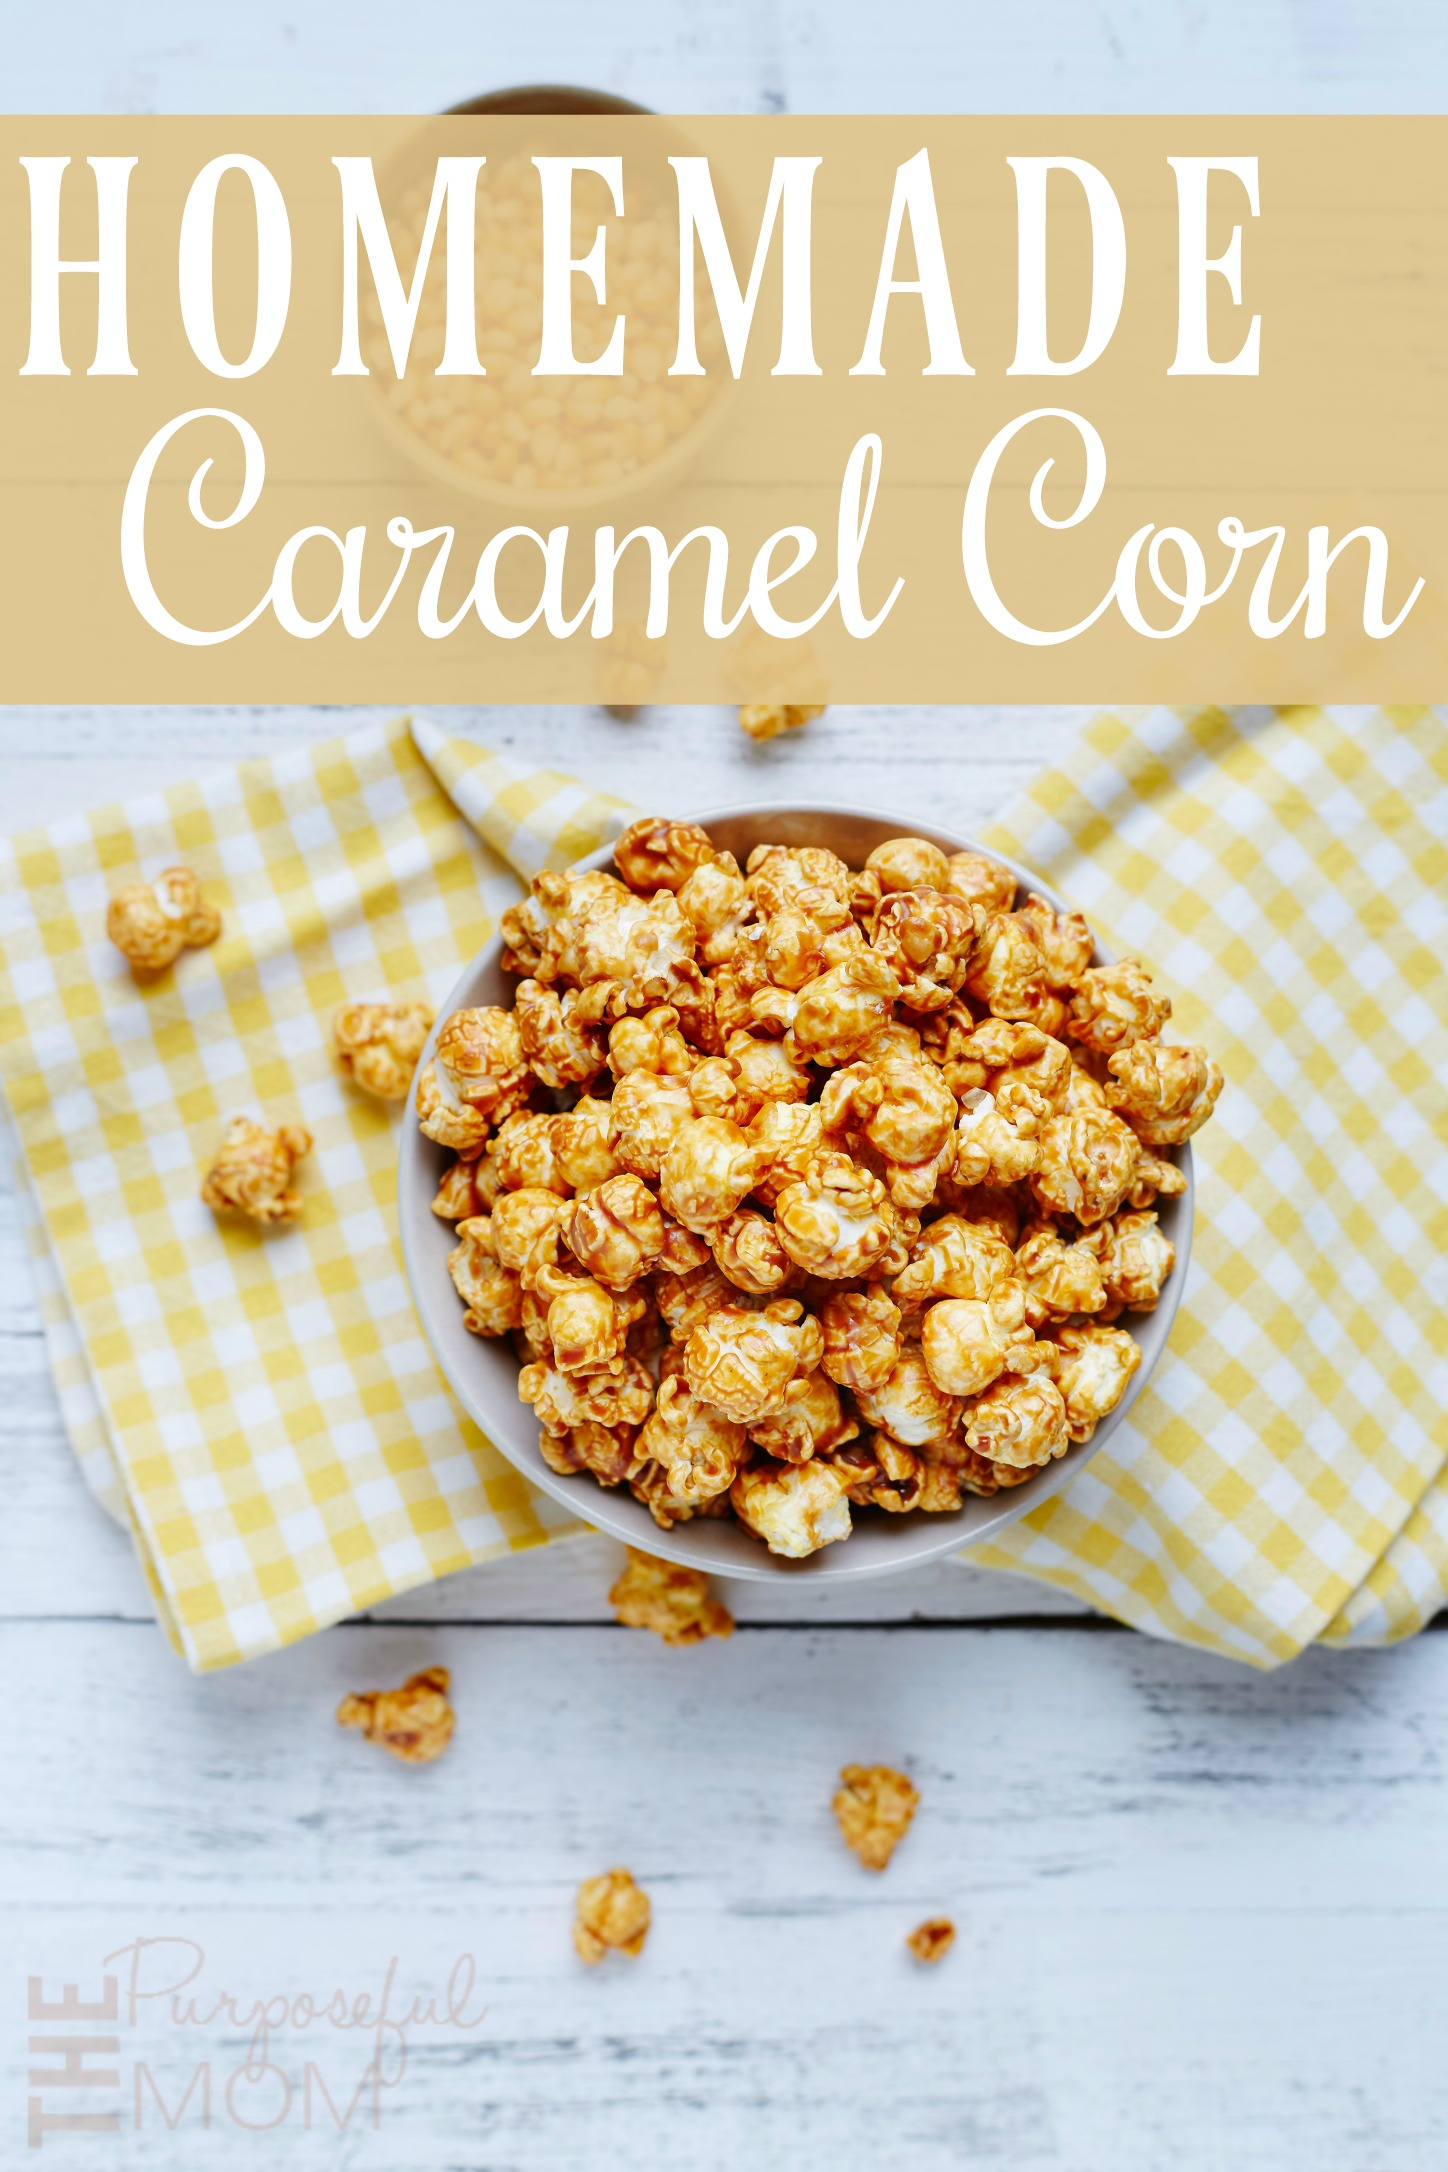 Homemade Microwave Caramel Corn--an easy recipe that's perfect for fall! Make it with kids too!